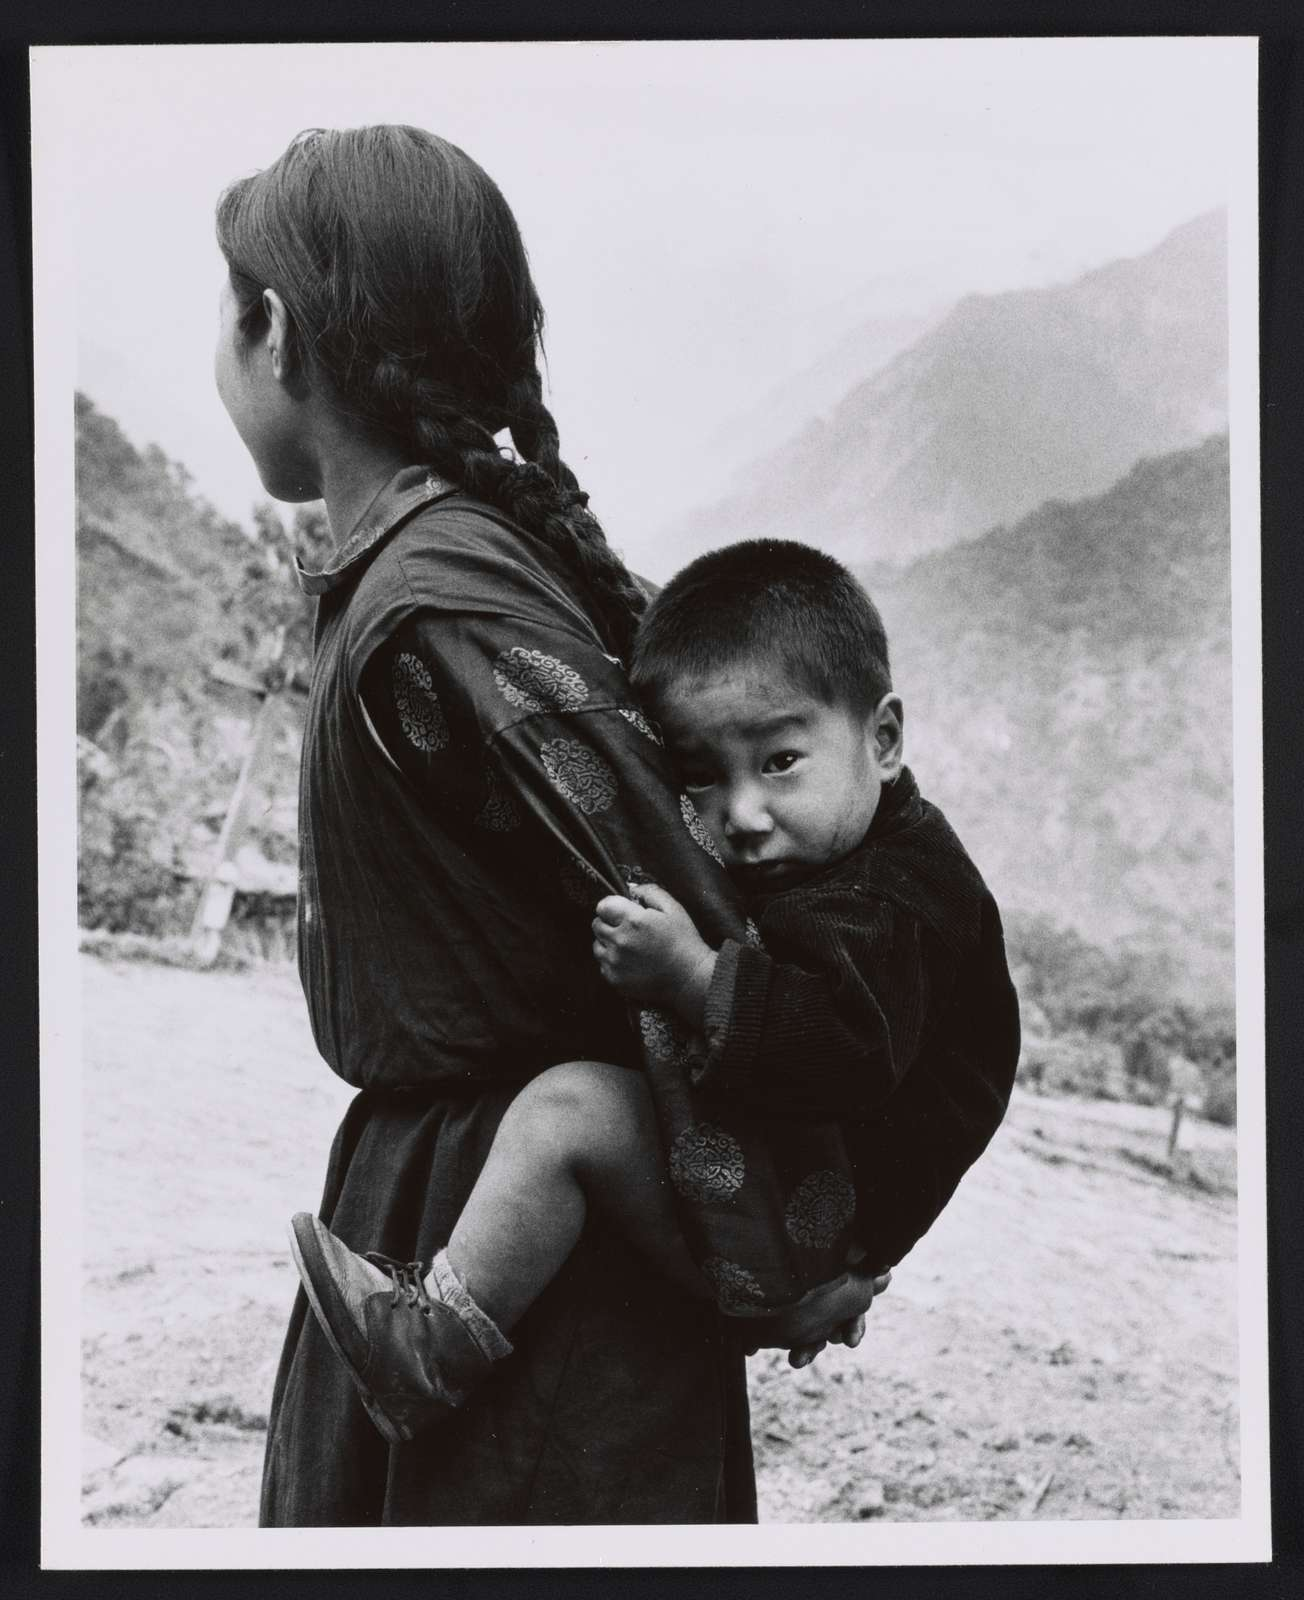 [Young woman with a small child on her back, Sikkim]